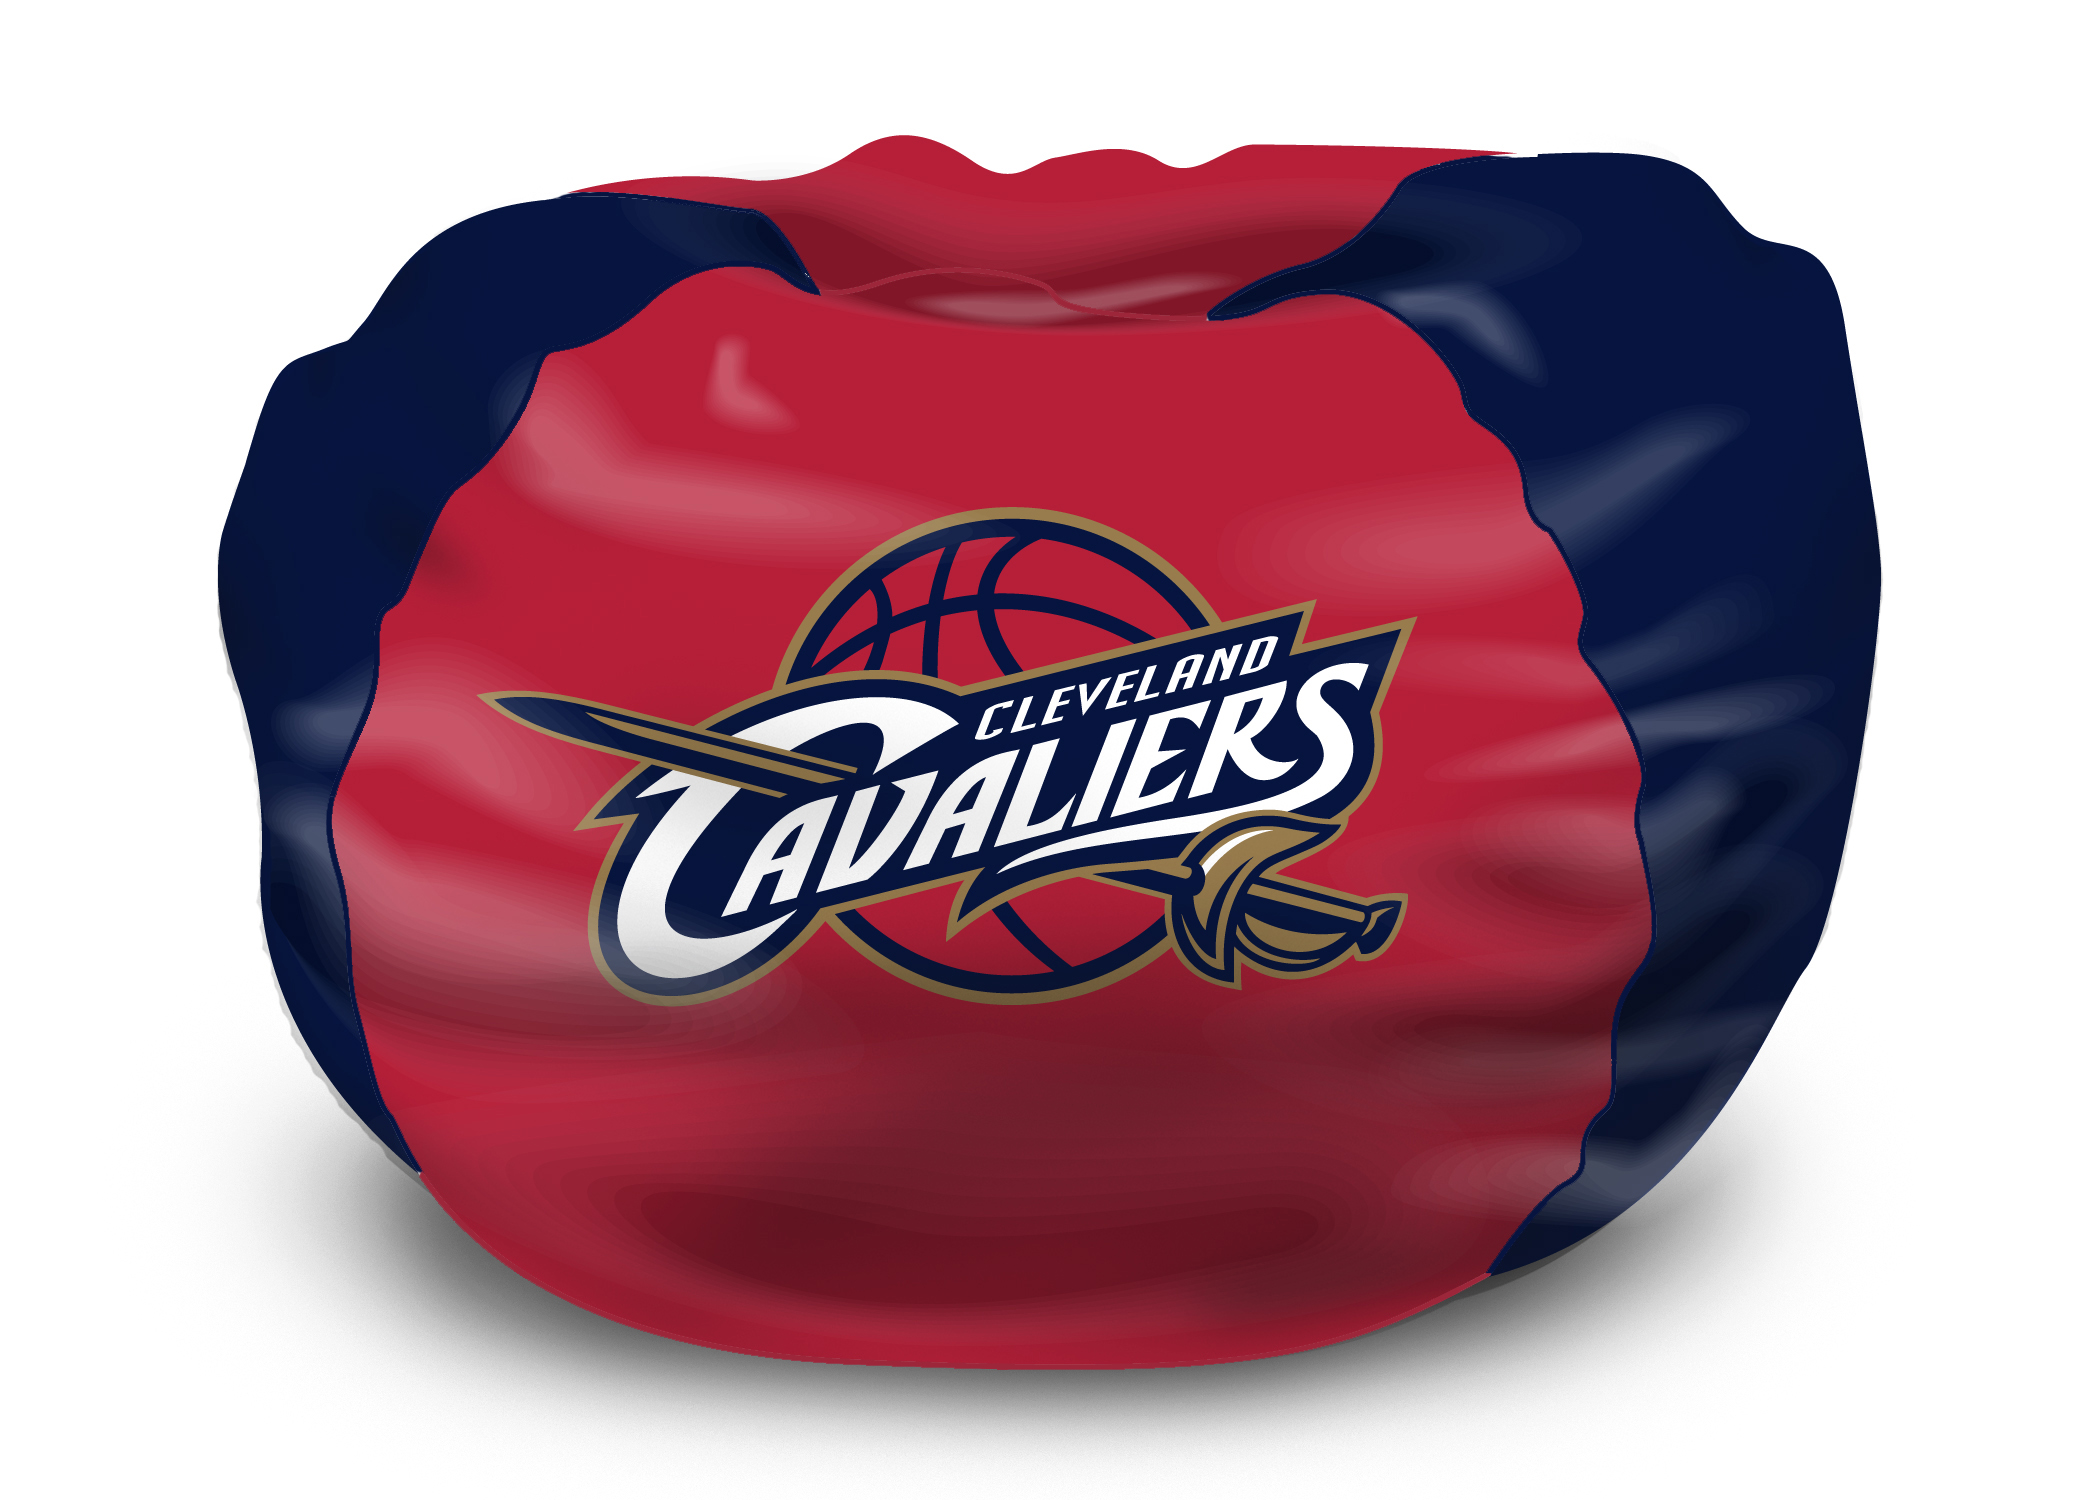 Cleveland Cavaliers Bean Bag Chair